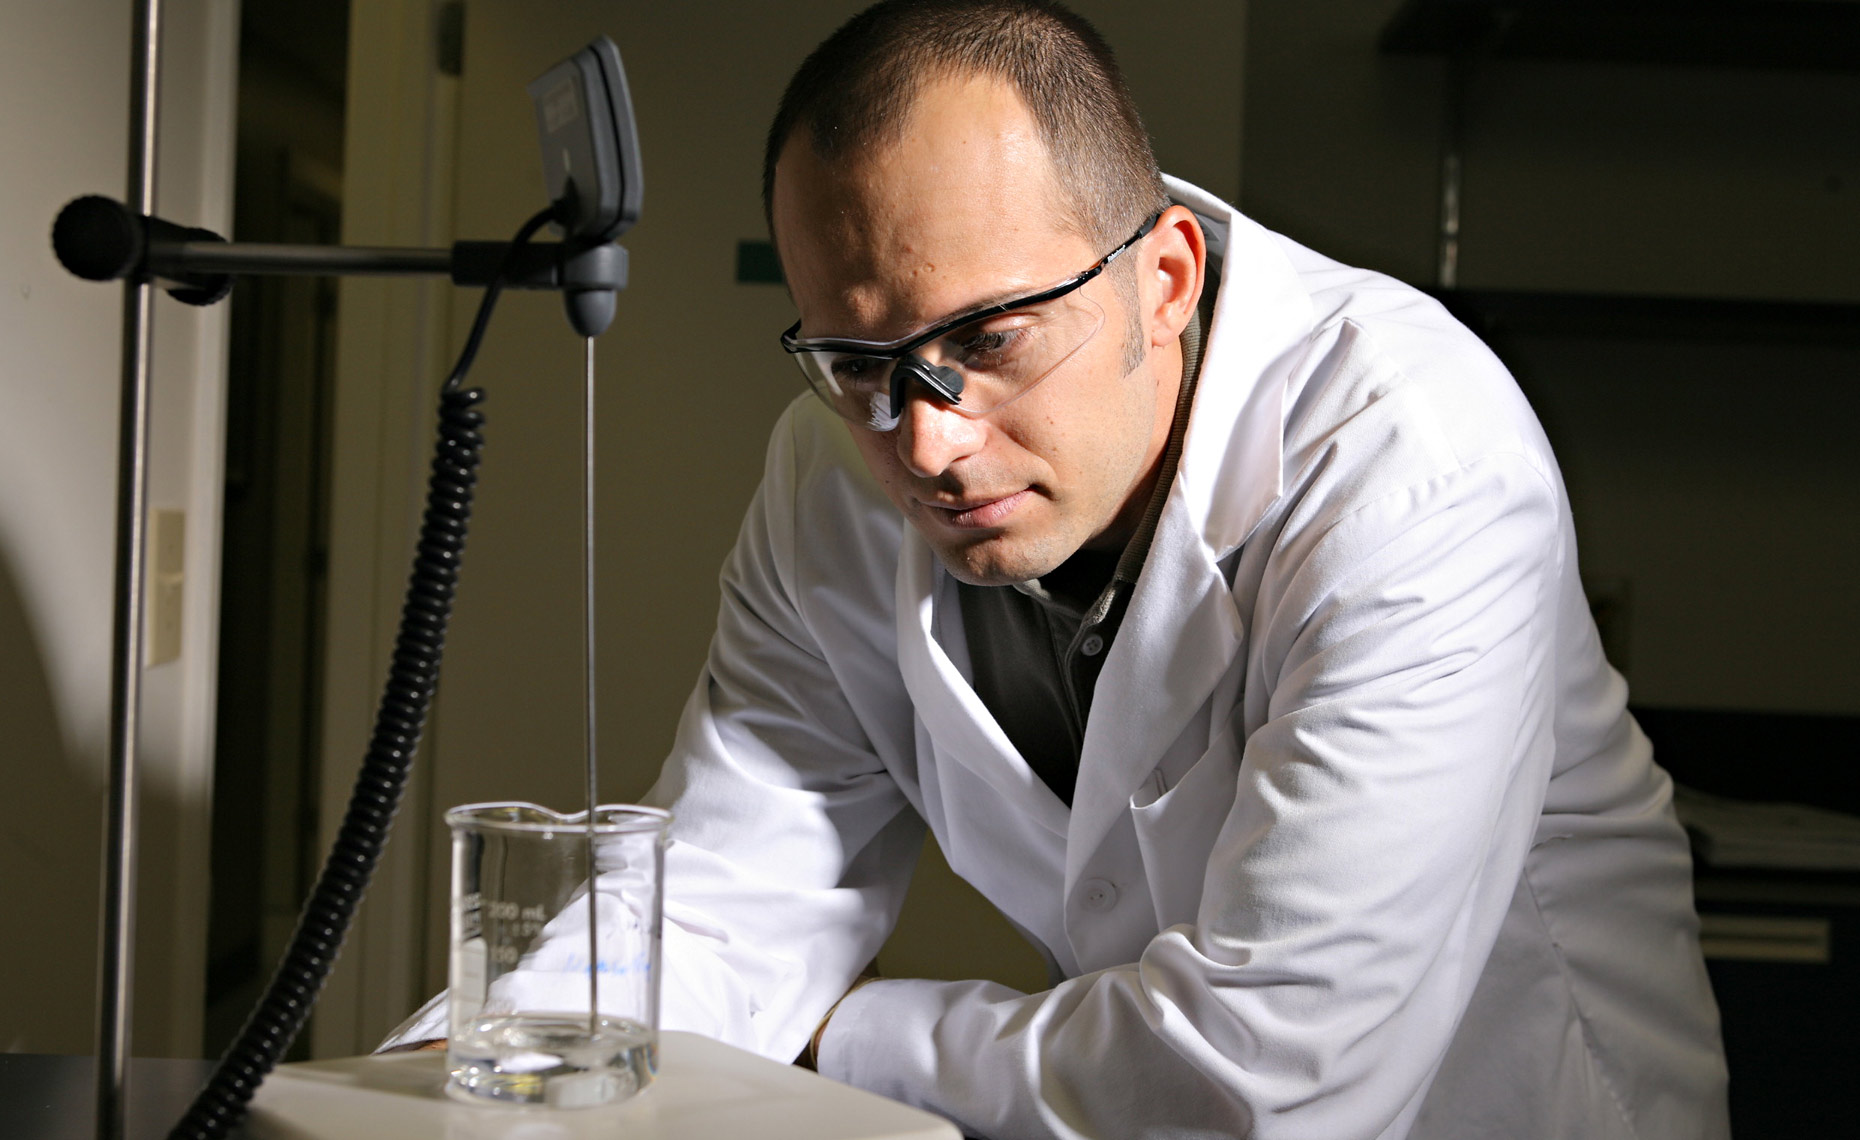 Medical technologist with sample beaker